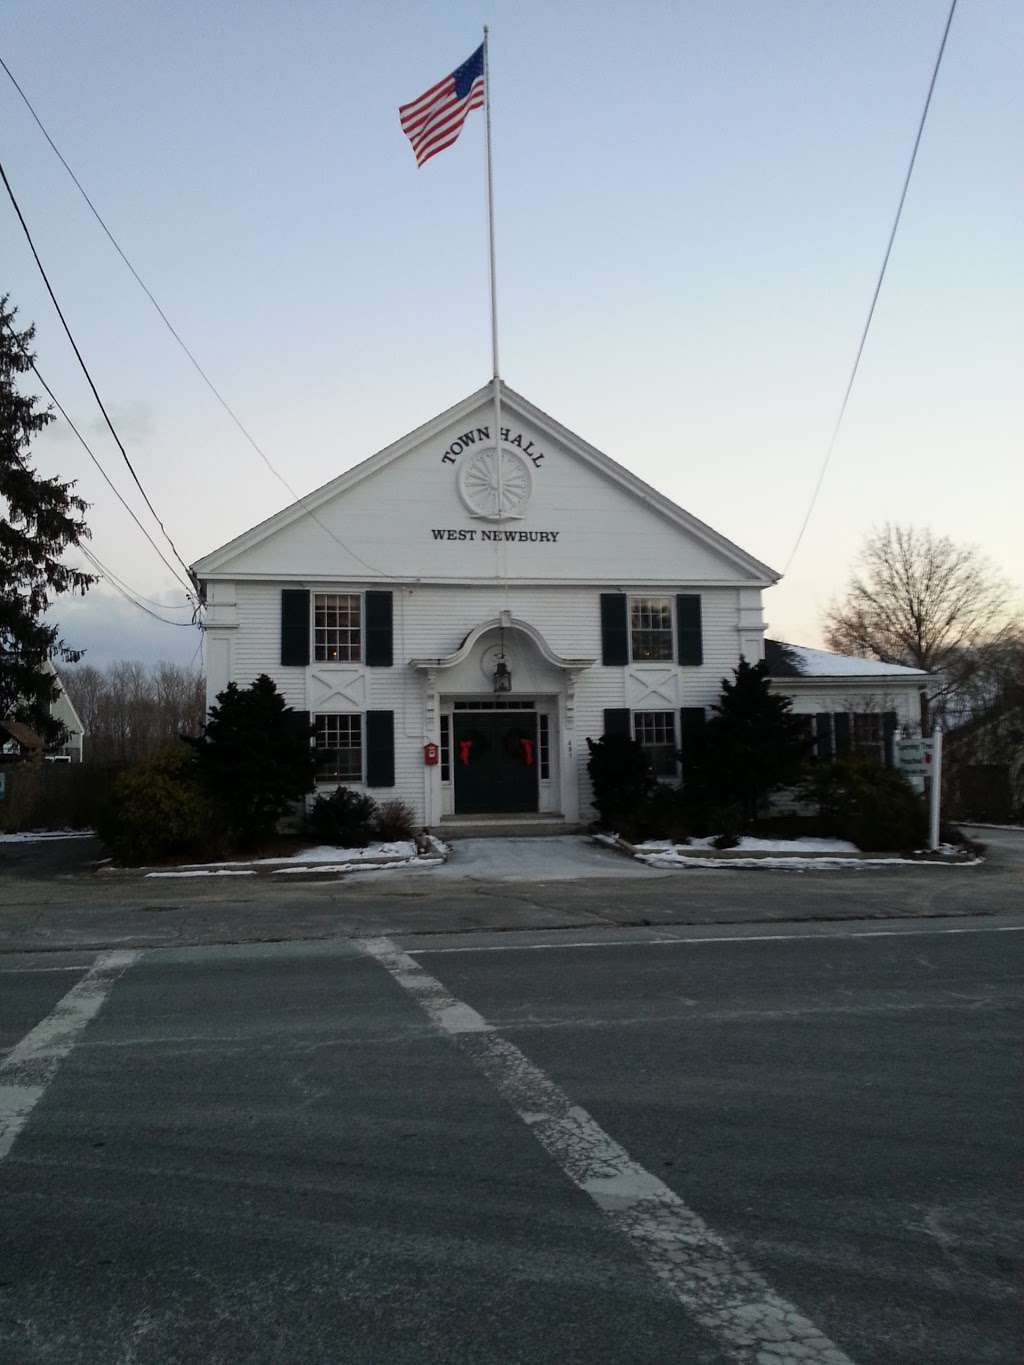 G.A.R Memorial Library - library  | Photo 6 of 10 | Address: 490 Main St, West Newbury, MA 01985, USA | Phone: (978) 363-1105